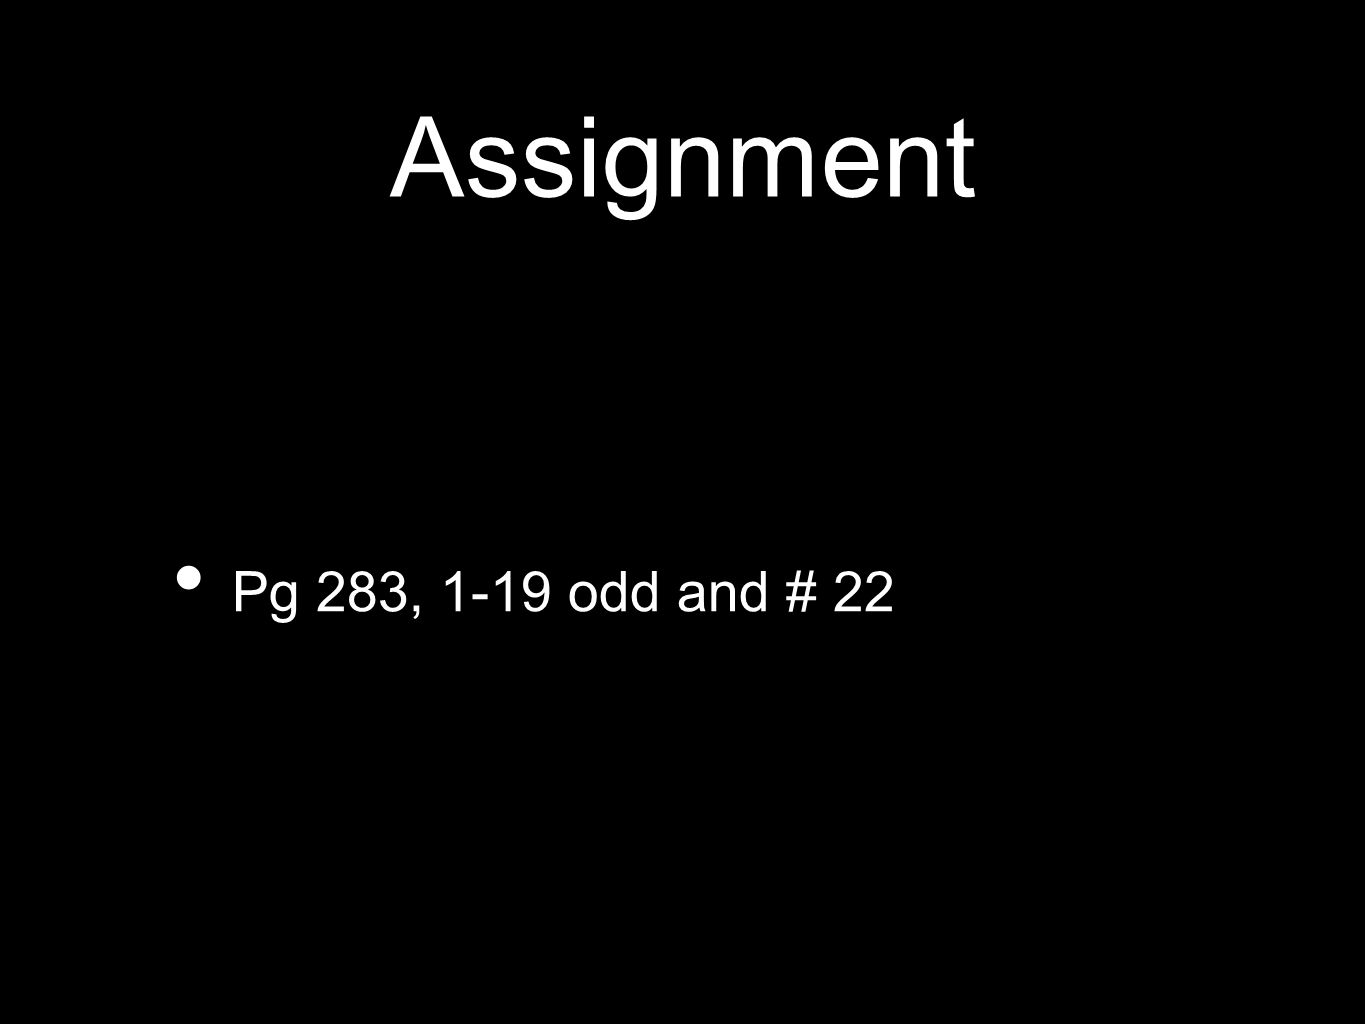 Assignment Pg 283, 1-19 odd and # 22